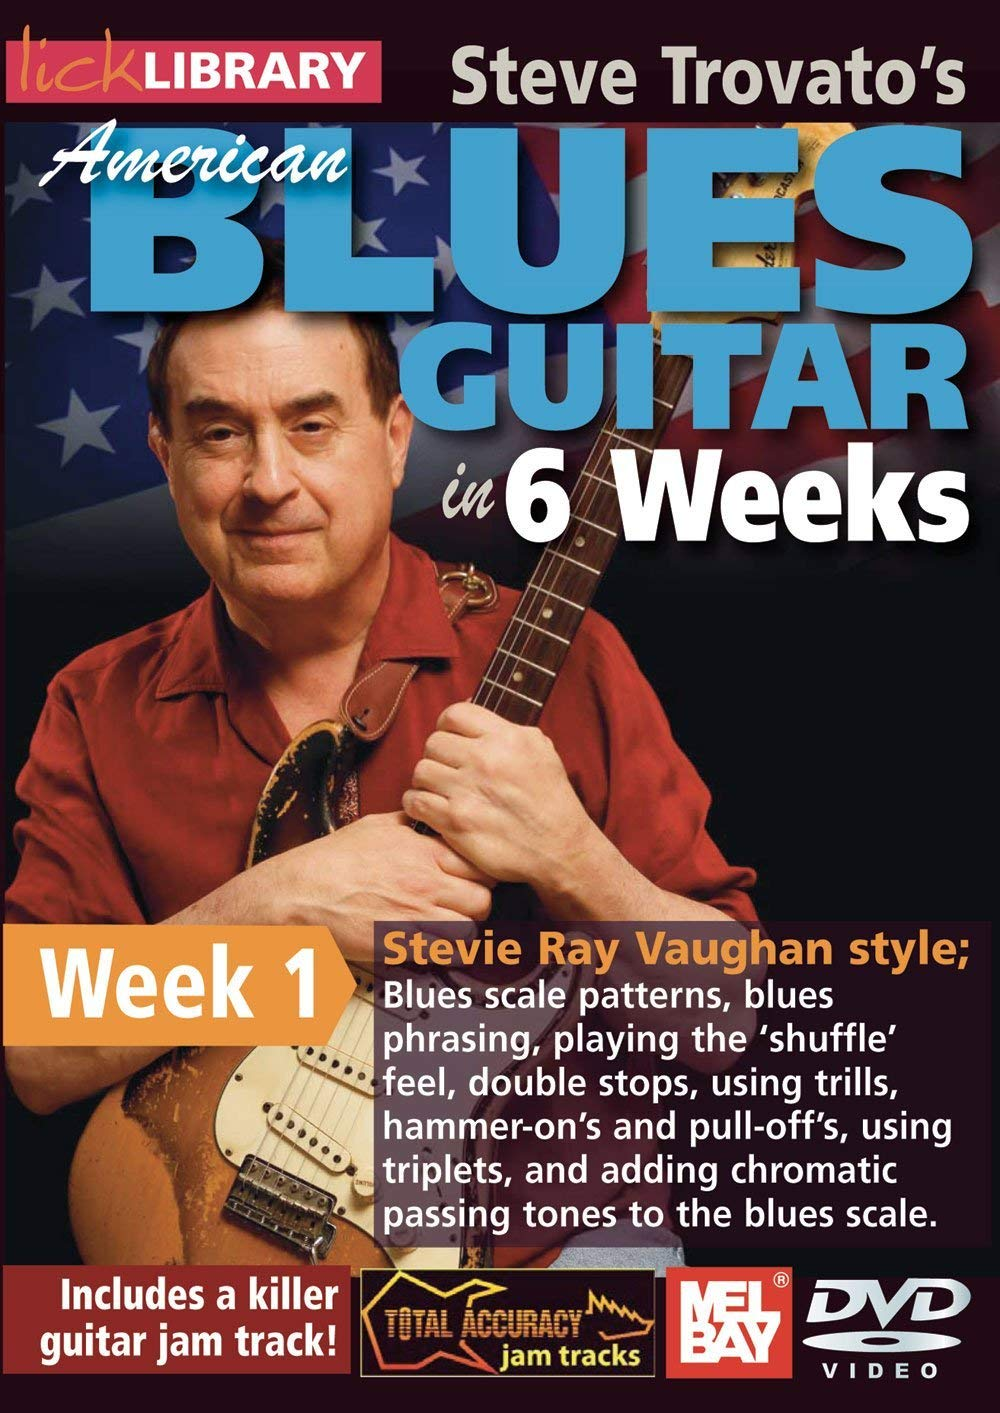 American Blues Guitar in 6 Weeks - Series: Lick LibraryFormat: DVDGuitar Artist: Steve TrovatoWelcome to the American Blues Guitar in 6 Weeks course. These lessons are designed to focus your practice towards realistic goals achievable in six weeks. Each week provides you with techniques, concepts and licks to help you play and understand blues soloing at a manageable easy to follow pace.